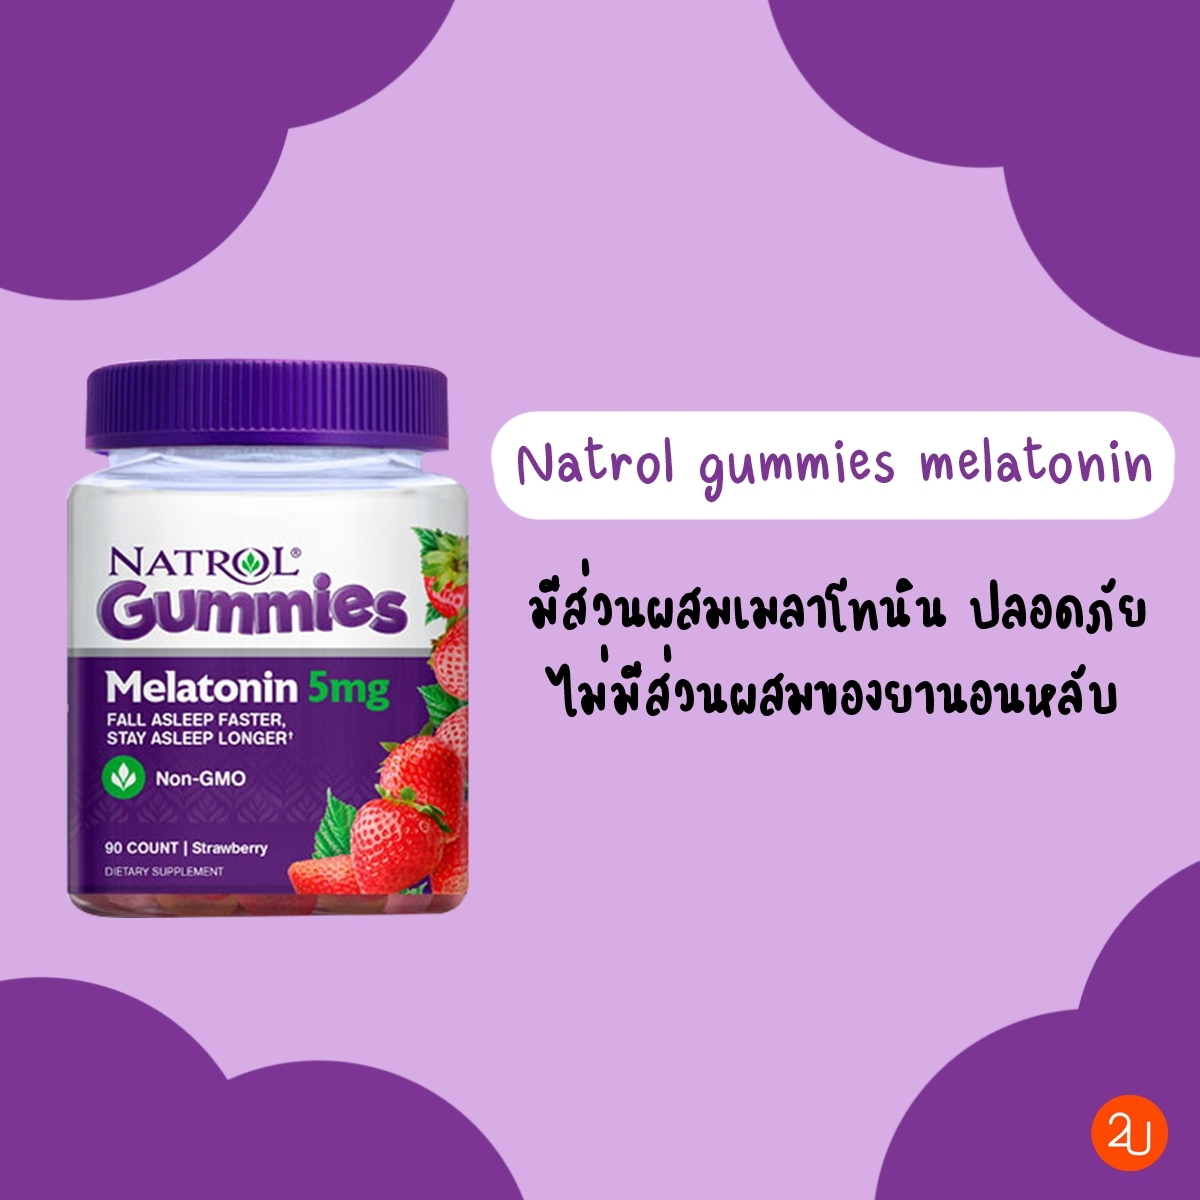 Natrol gummies melatonin